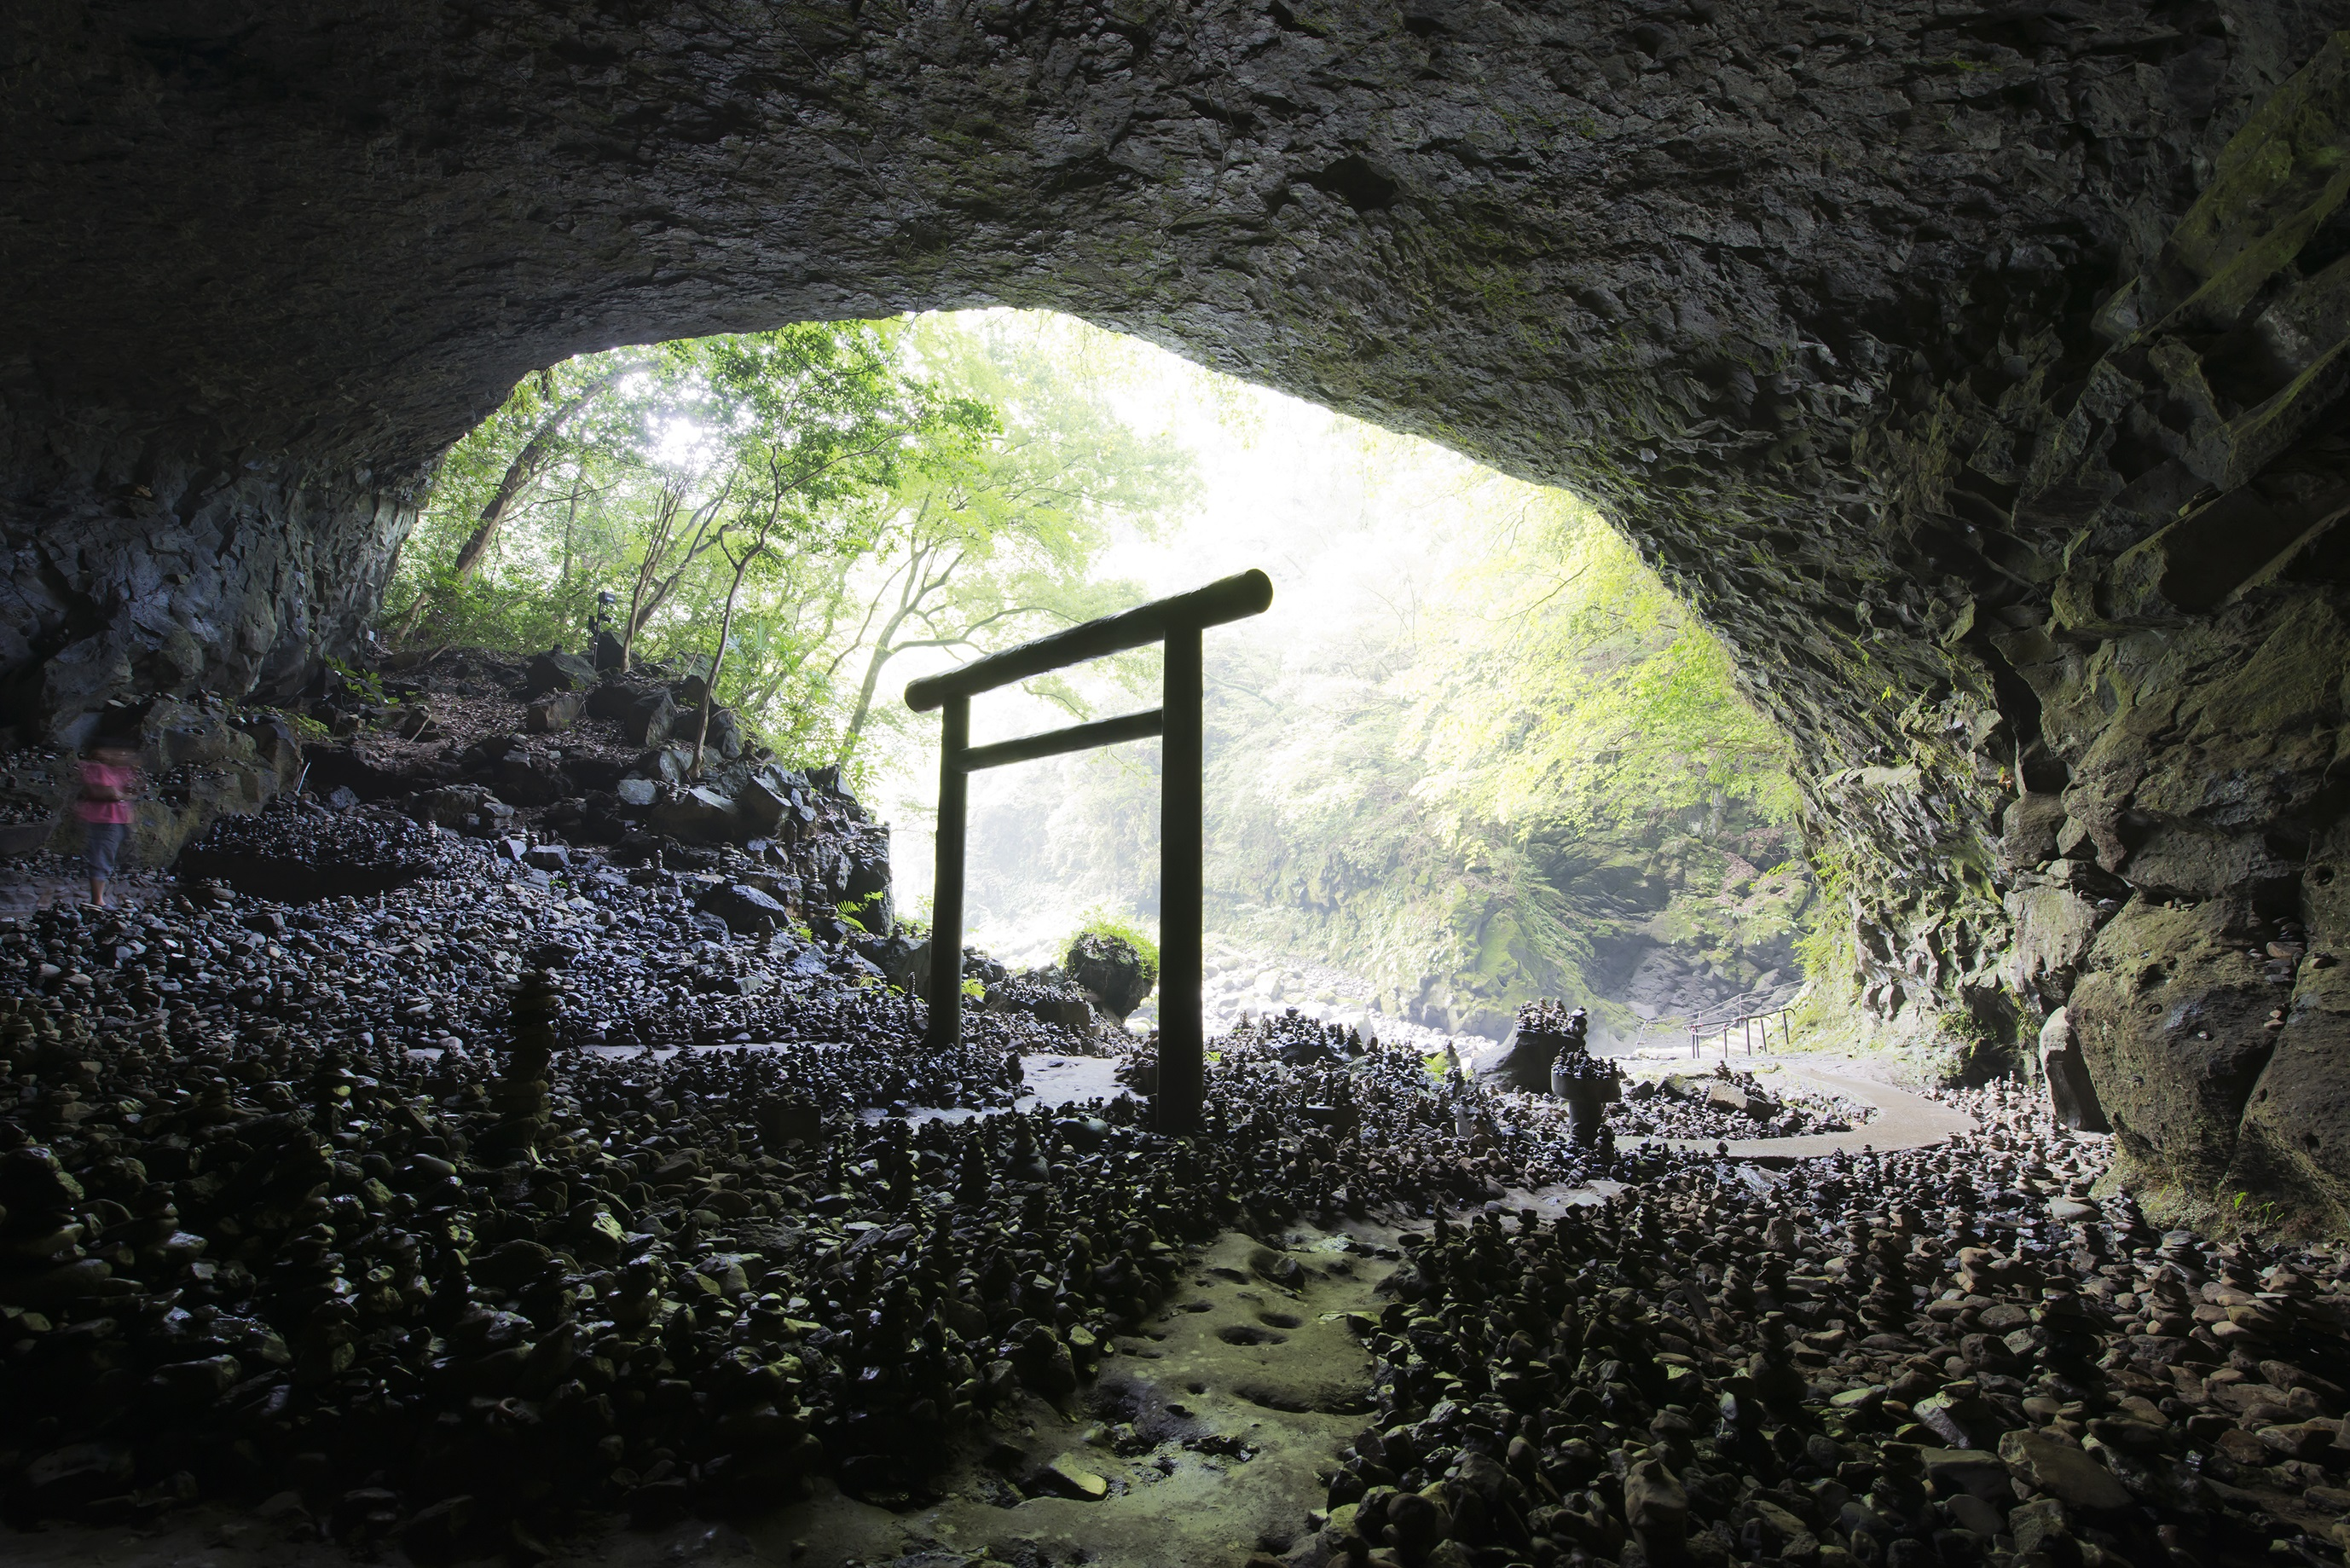 Takachiho, Ama no Yasukawara — the place where eight million troubled deities supposedly congregated at the riverbed when Amaterasu hid in the cave.